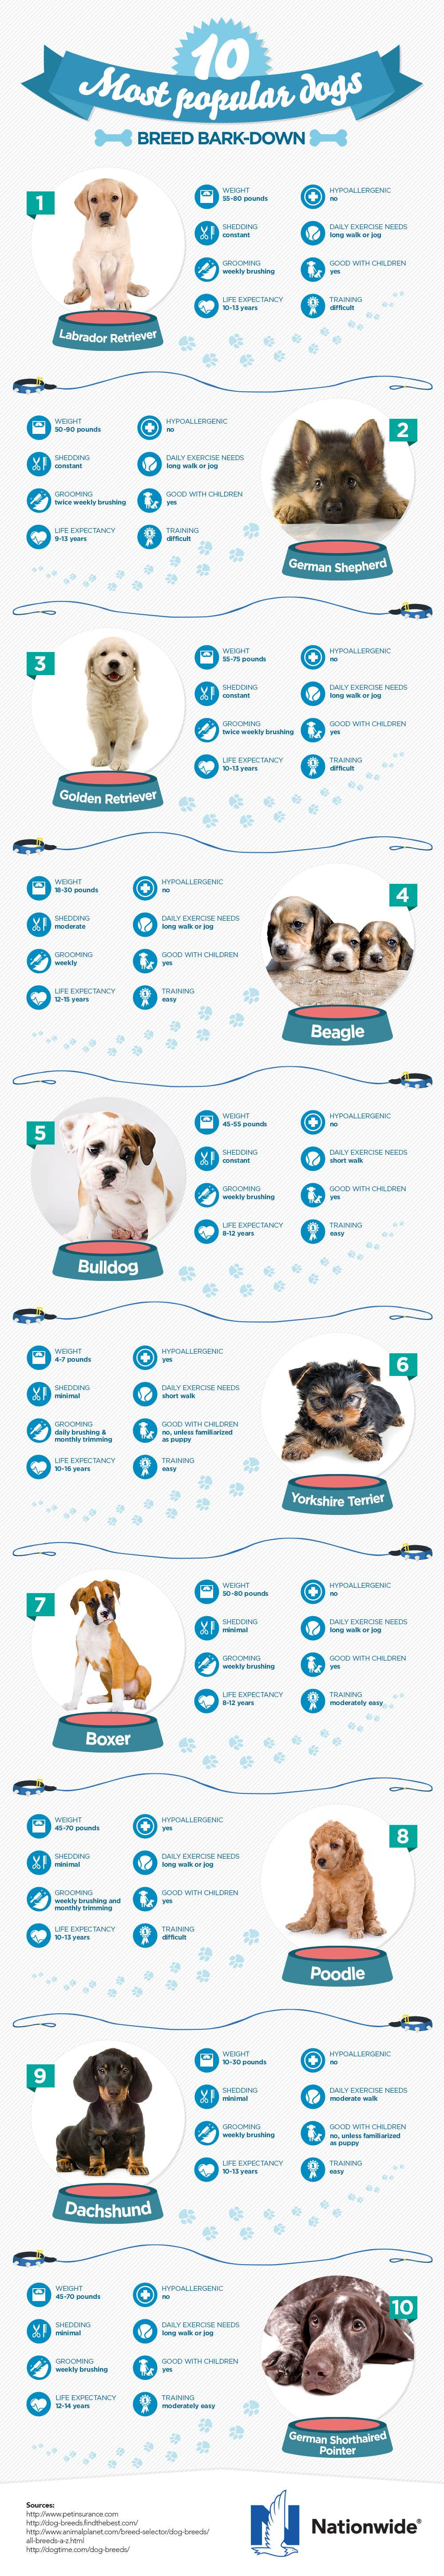 Most popular breeds (in the USA, I imagine.) Dog